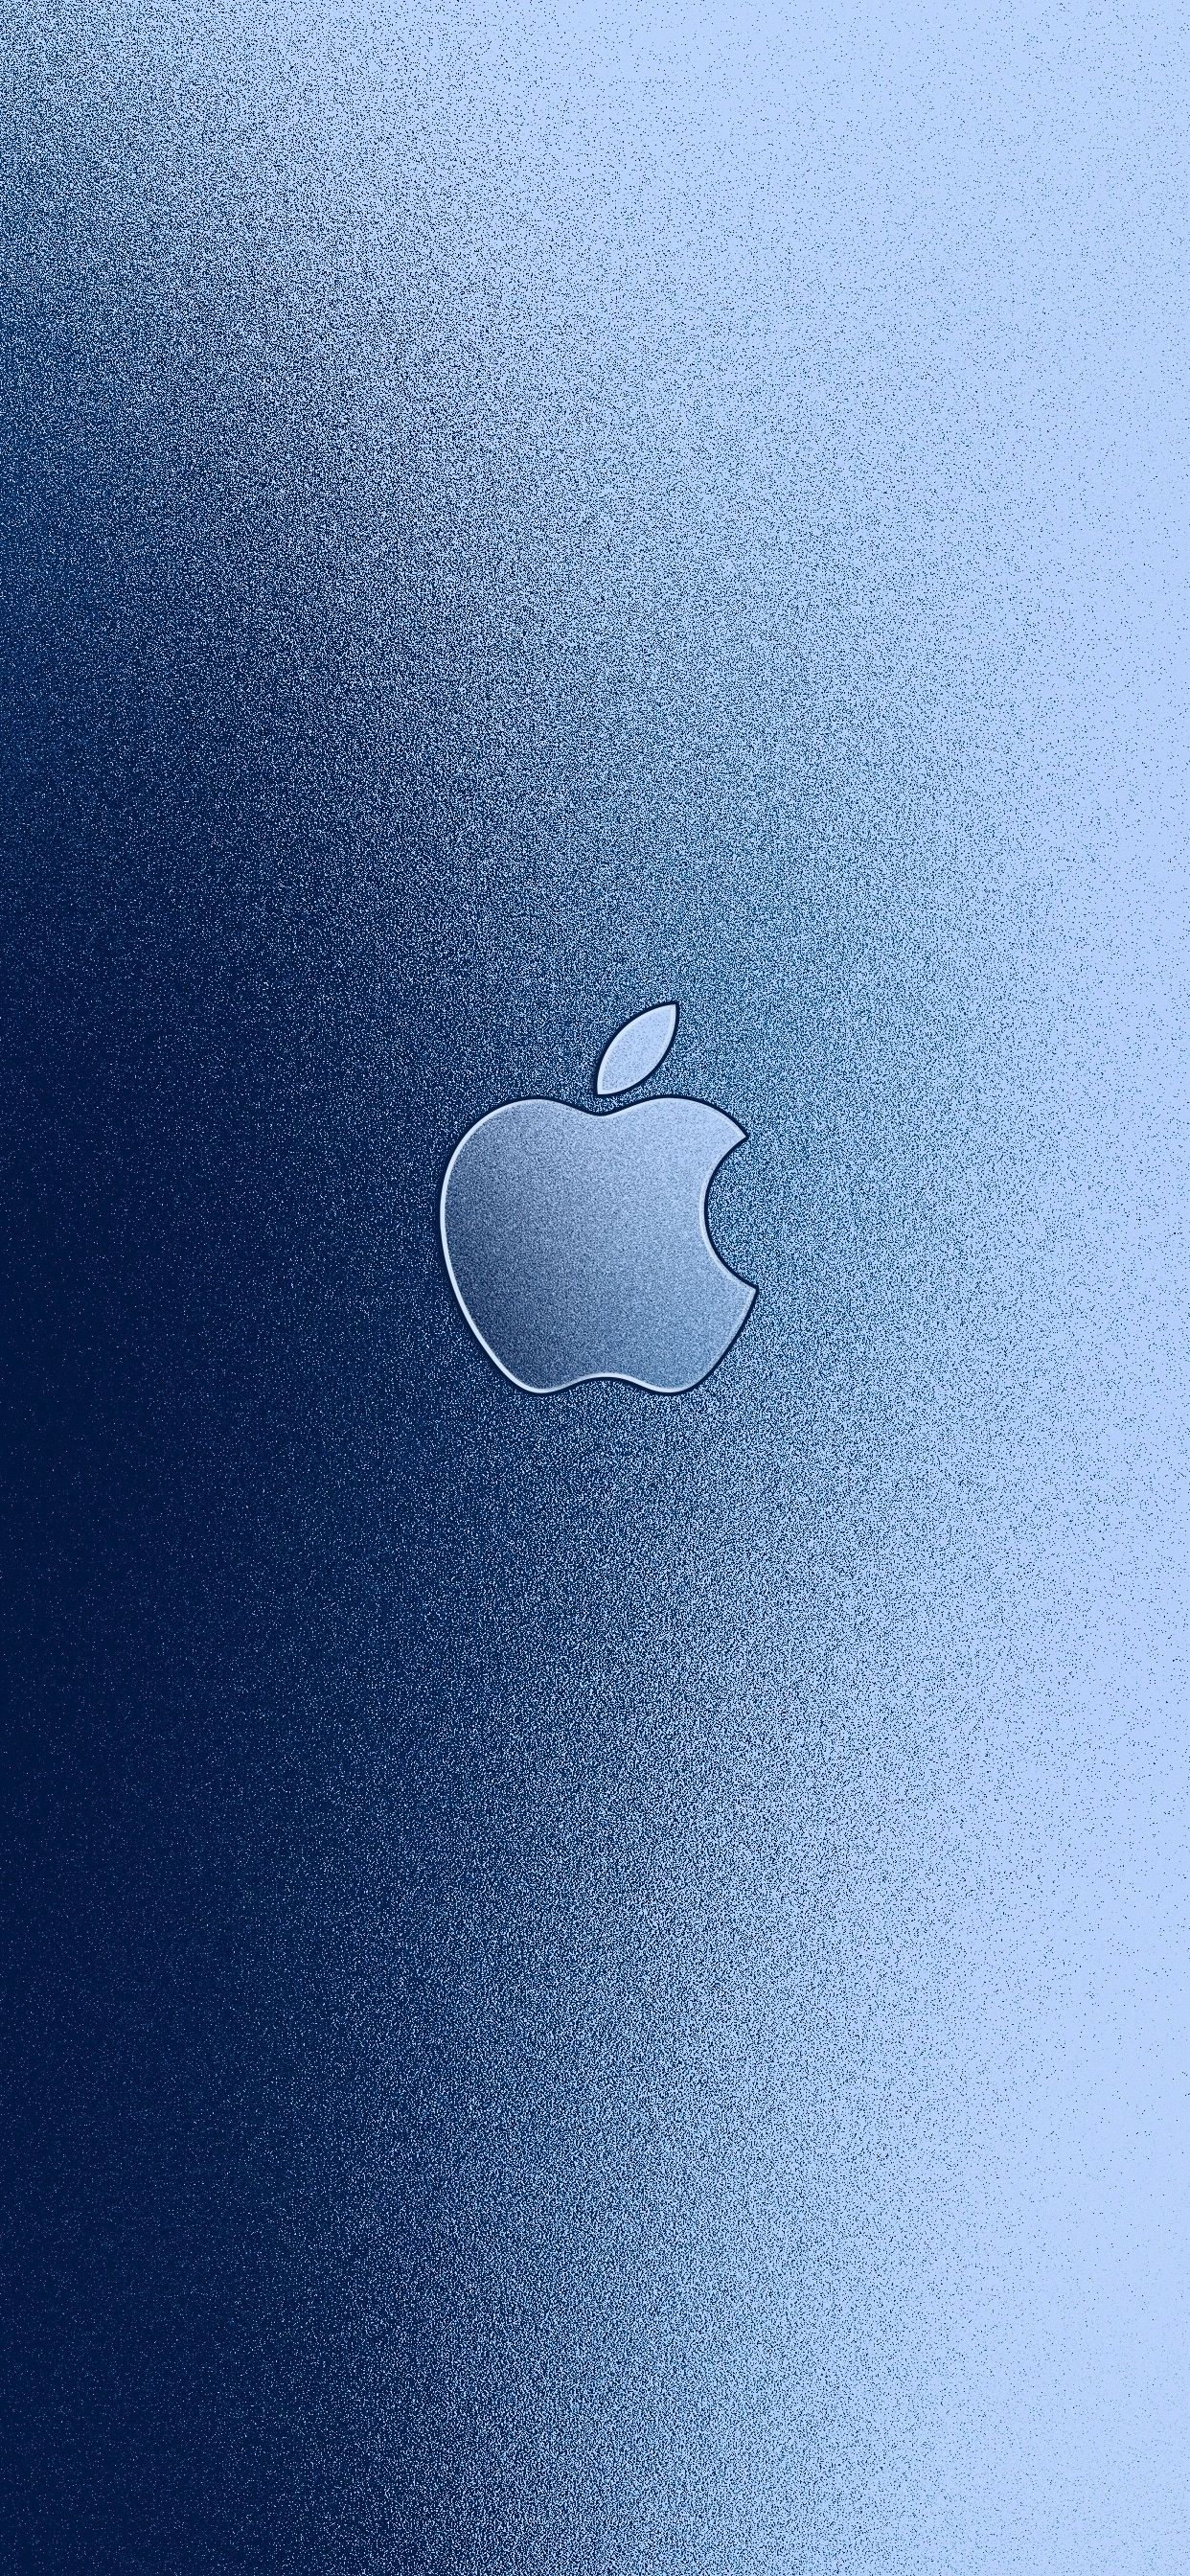 Iphone Logo Wallpapers Top Free Iphone Logo Backgrounds Wallpaperaccess